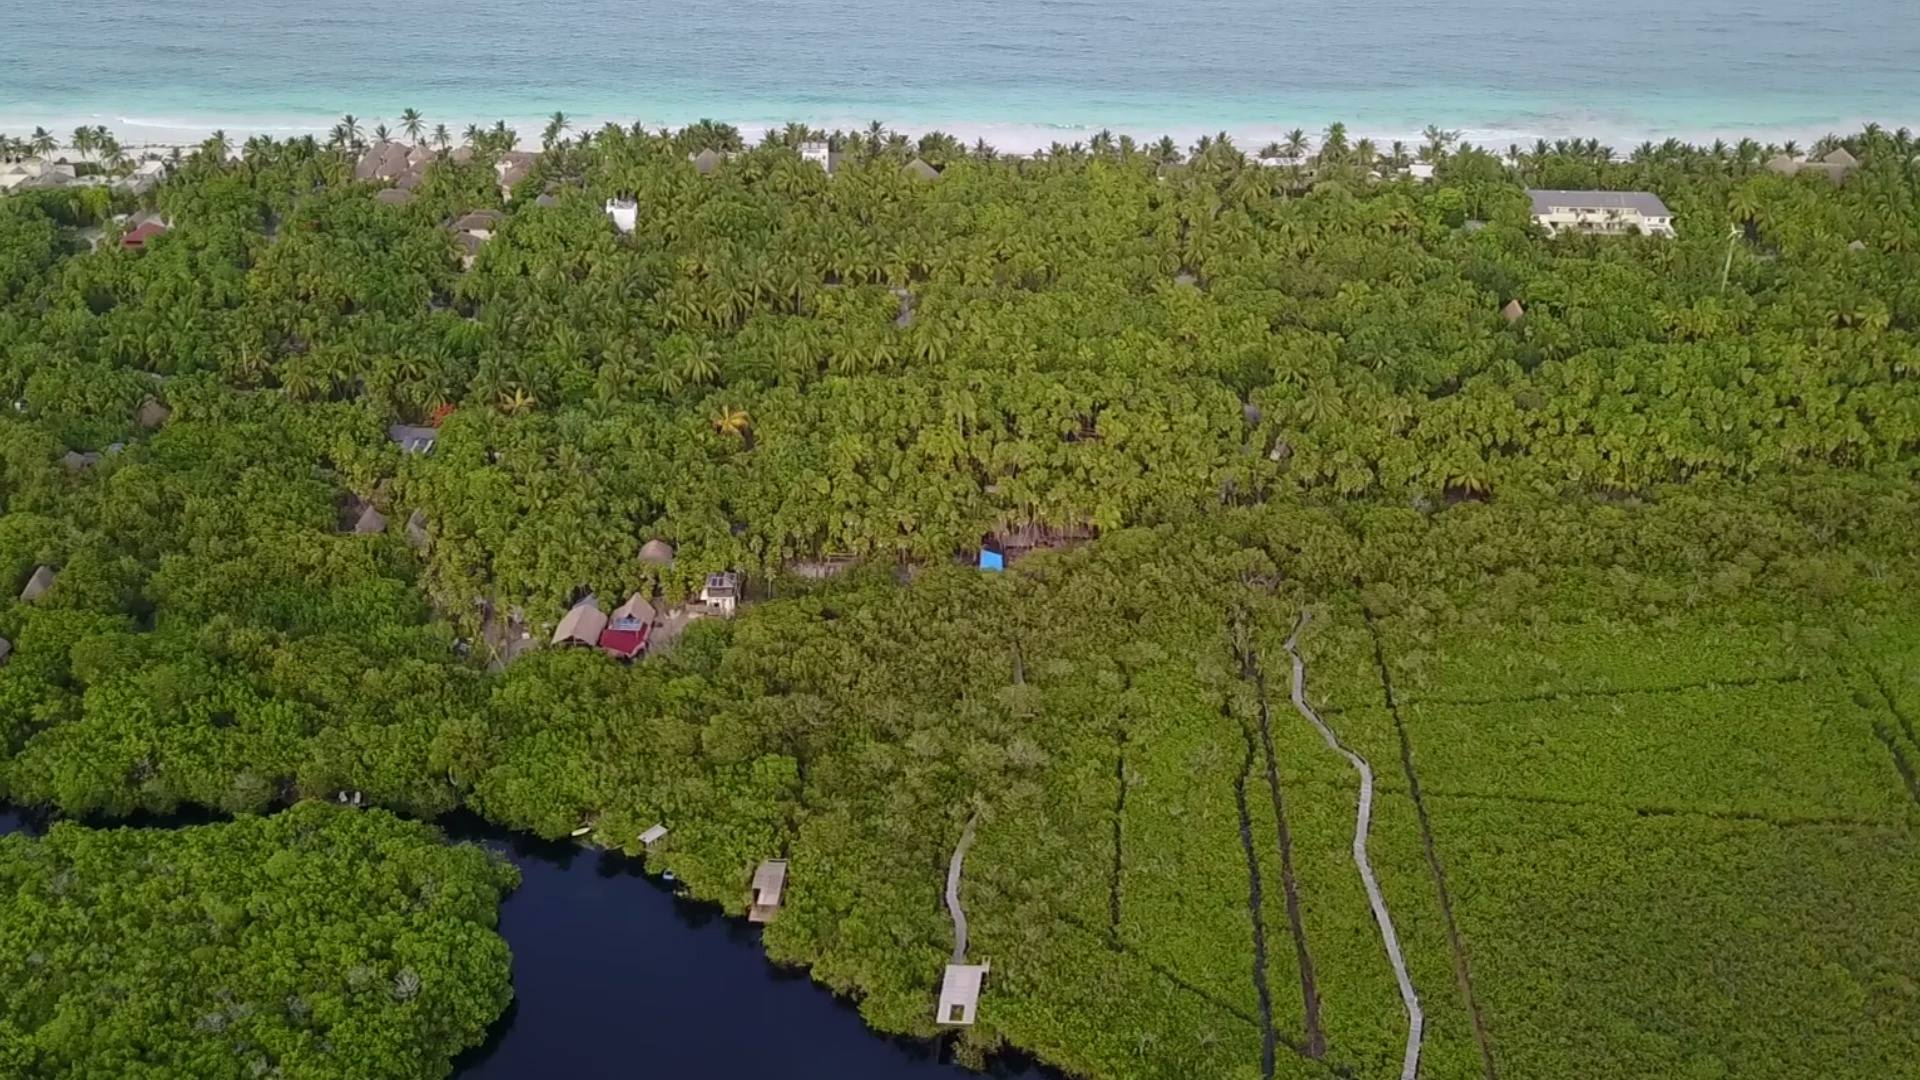 Cenote Encantado Tulum from above and beachfront view. 25/07/2017